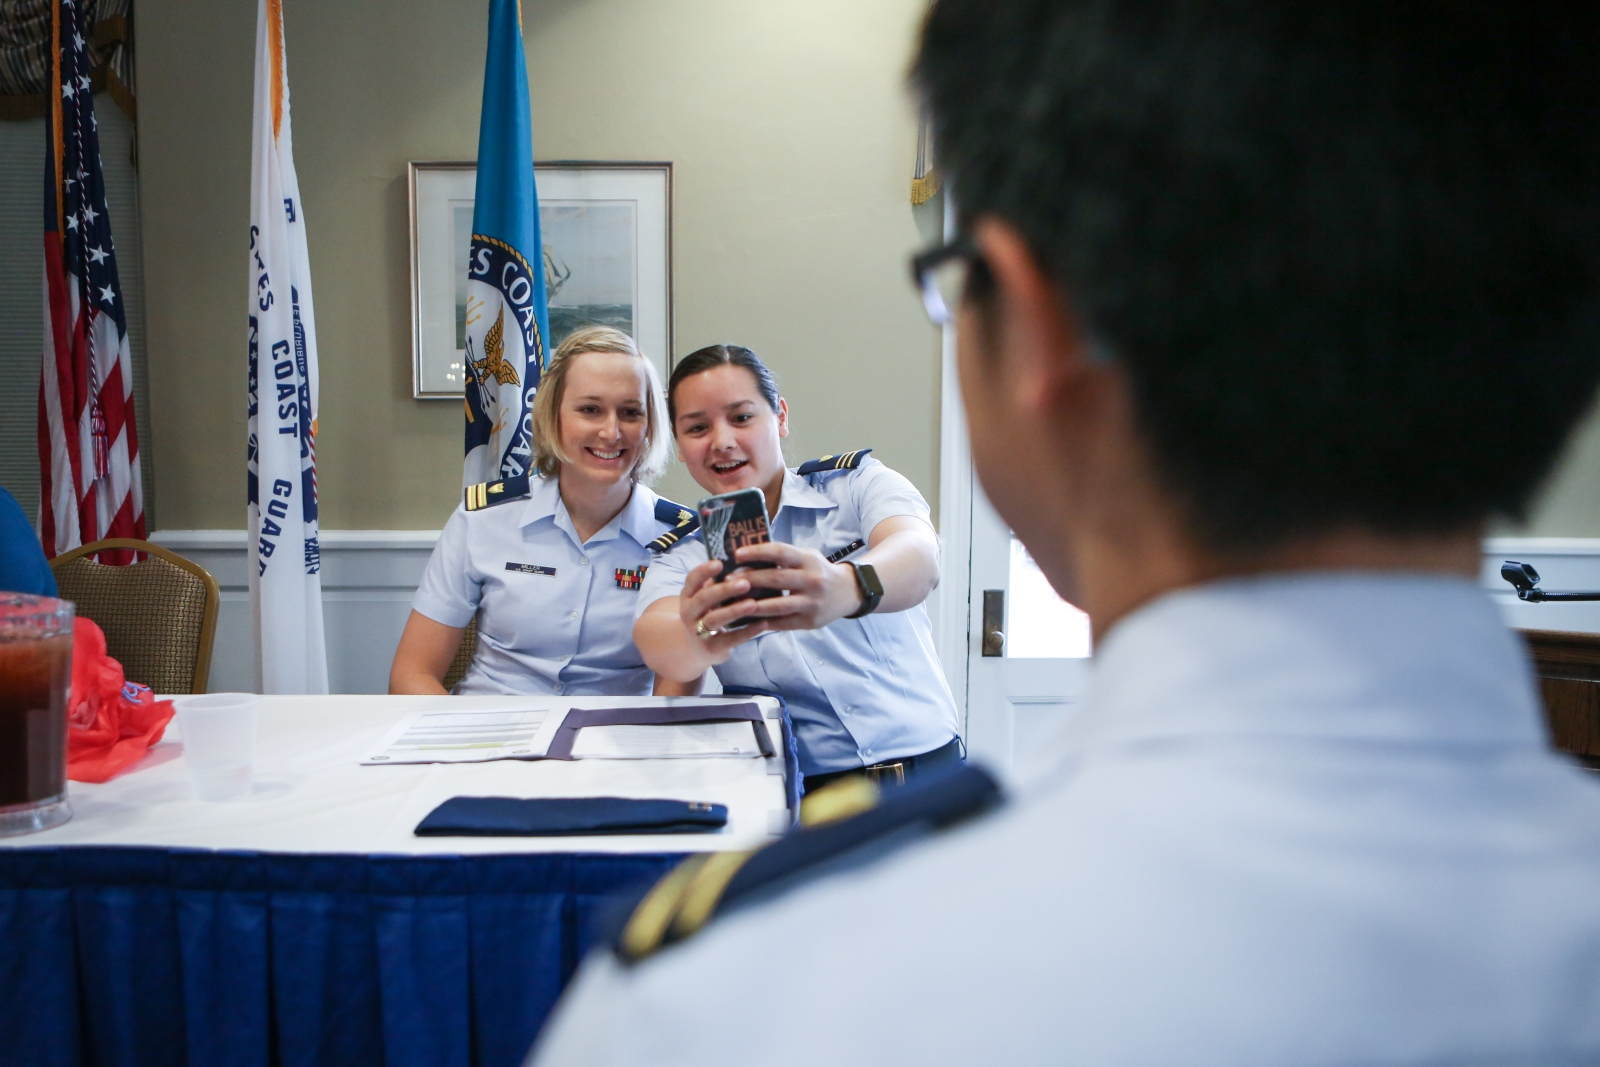 Amanda Roy takes a selfie with Taylor after Taylor's presentation on the SPECTRUM Lunch Panel during Eclipse Week at the Coast Guard Academy in New London, CT on April 6, 2017.